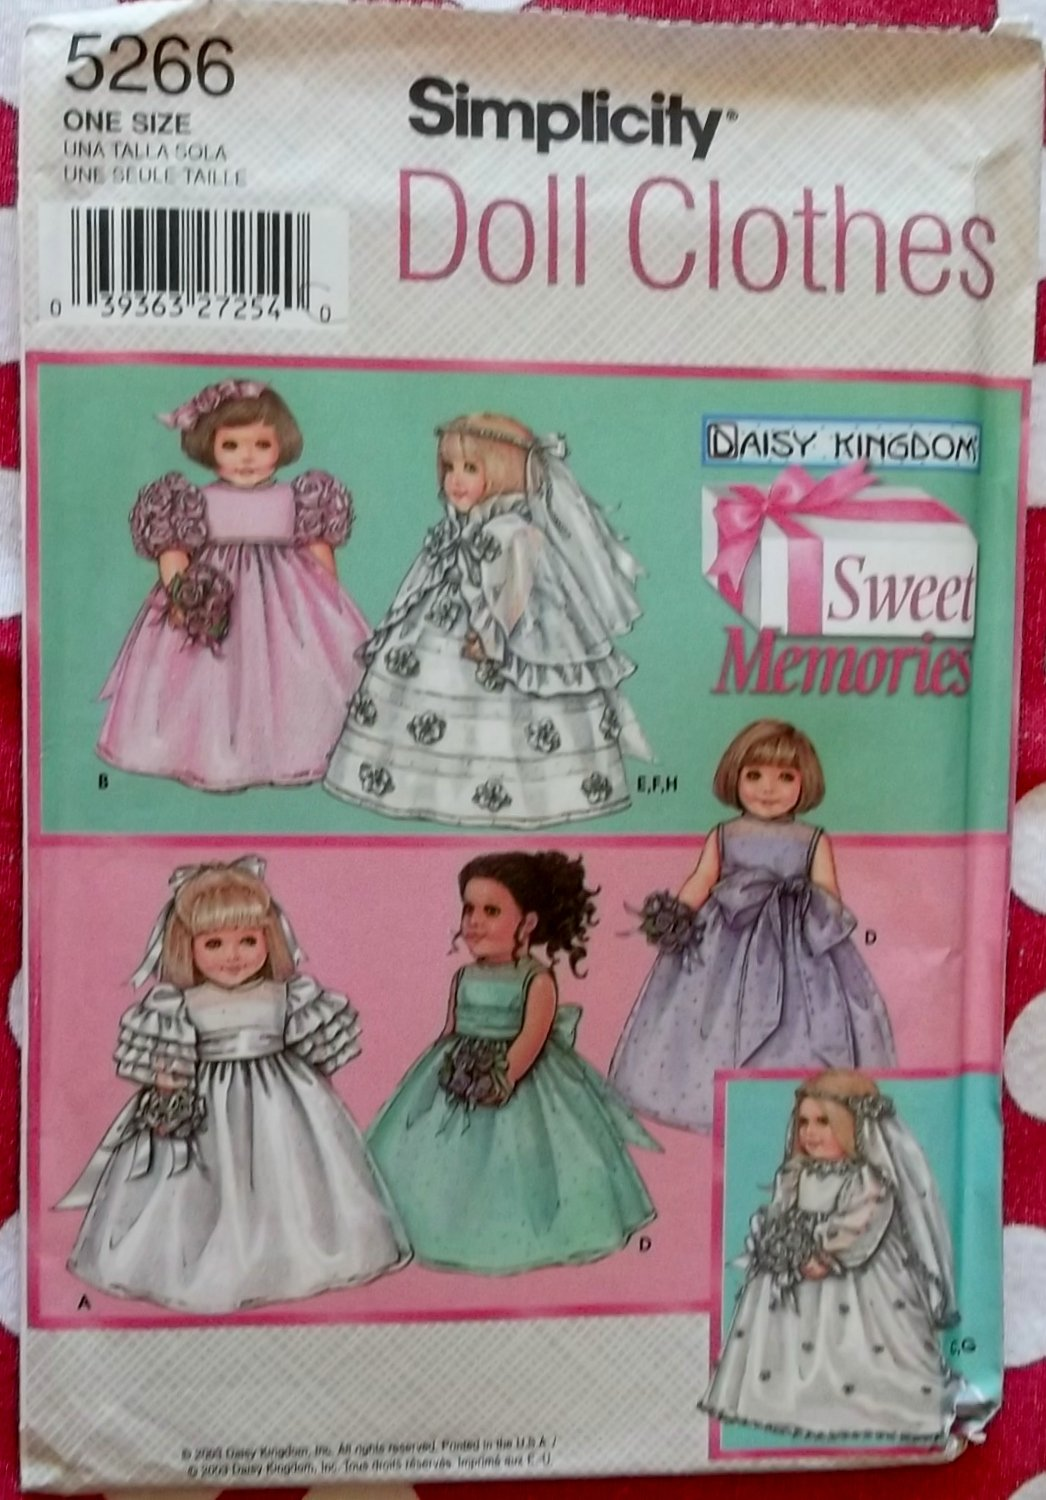 """Simplicity 5266 Daisy Kingdom Sweet Memories 18"""" Doll Clothes Simplicity 5266 Pattern, Uncut"""